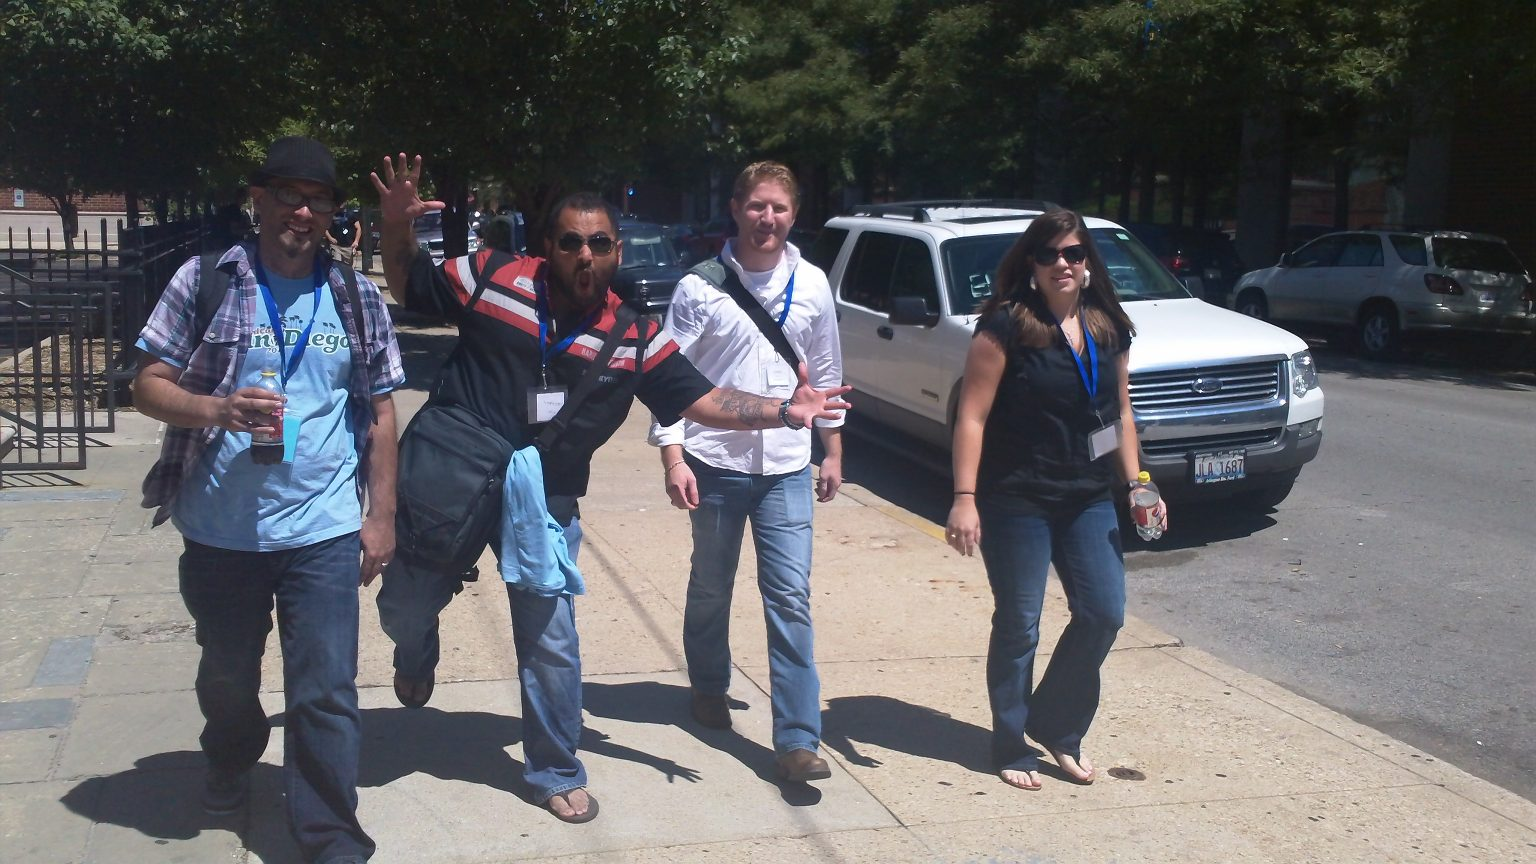 Dre, Tony, Jared and Sam heading back from lunch